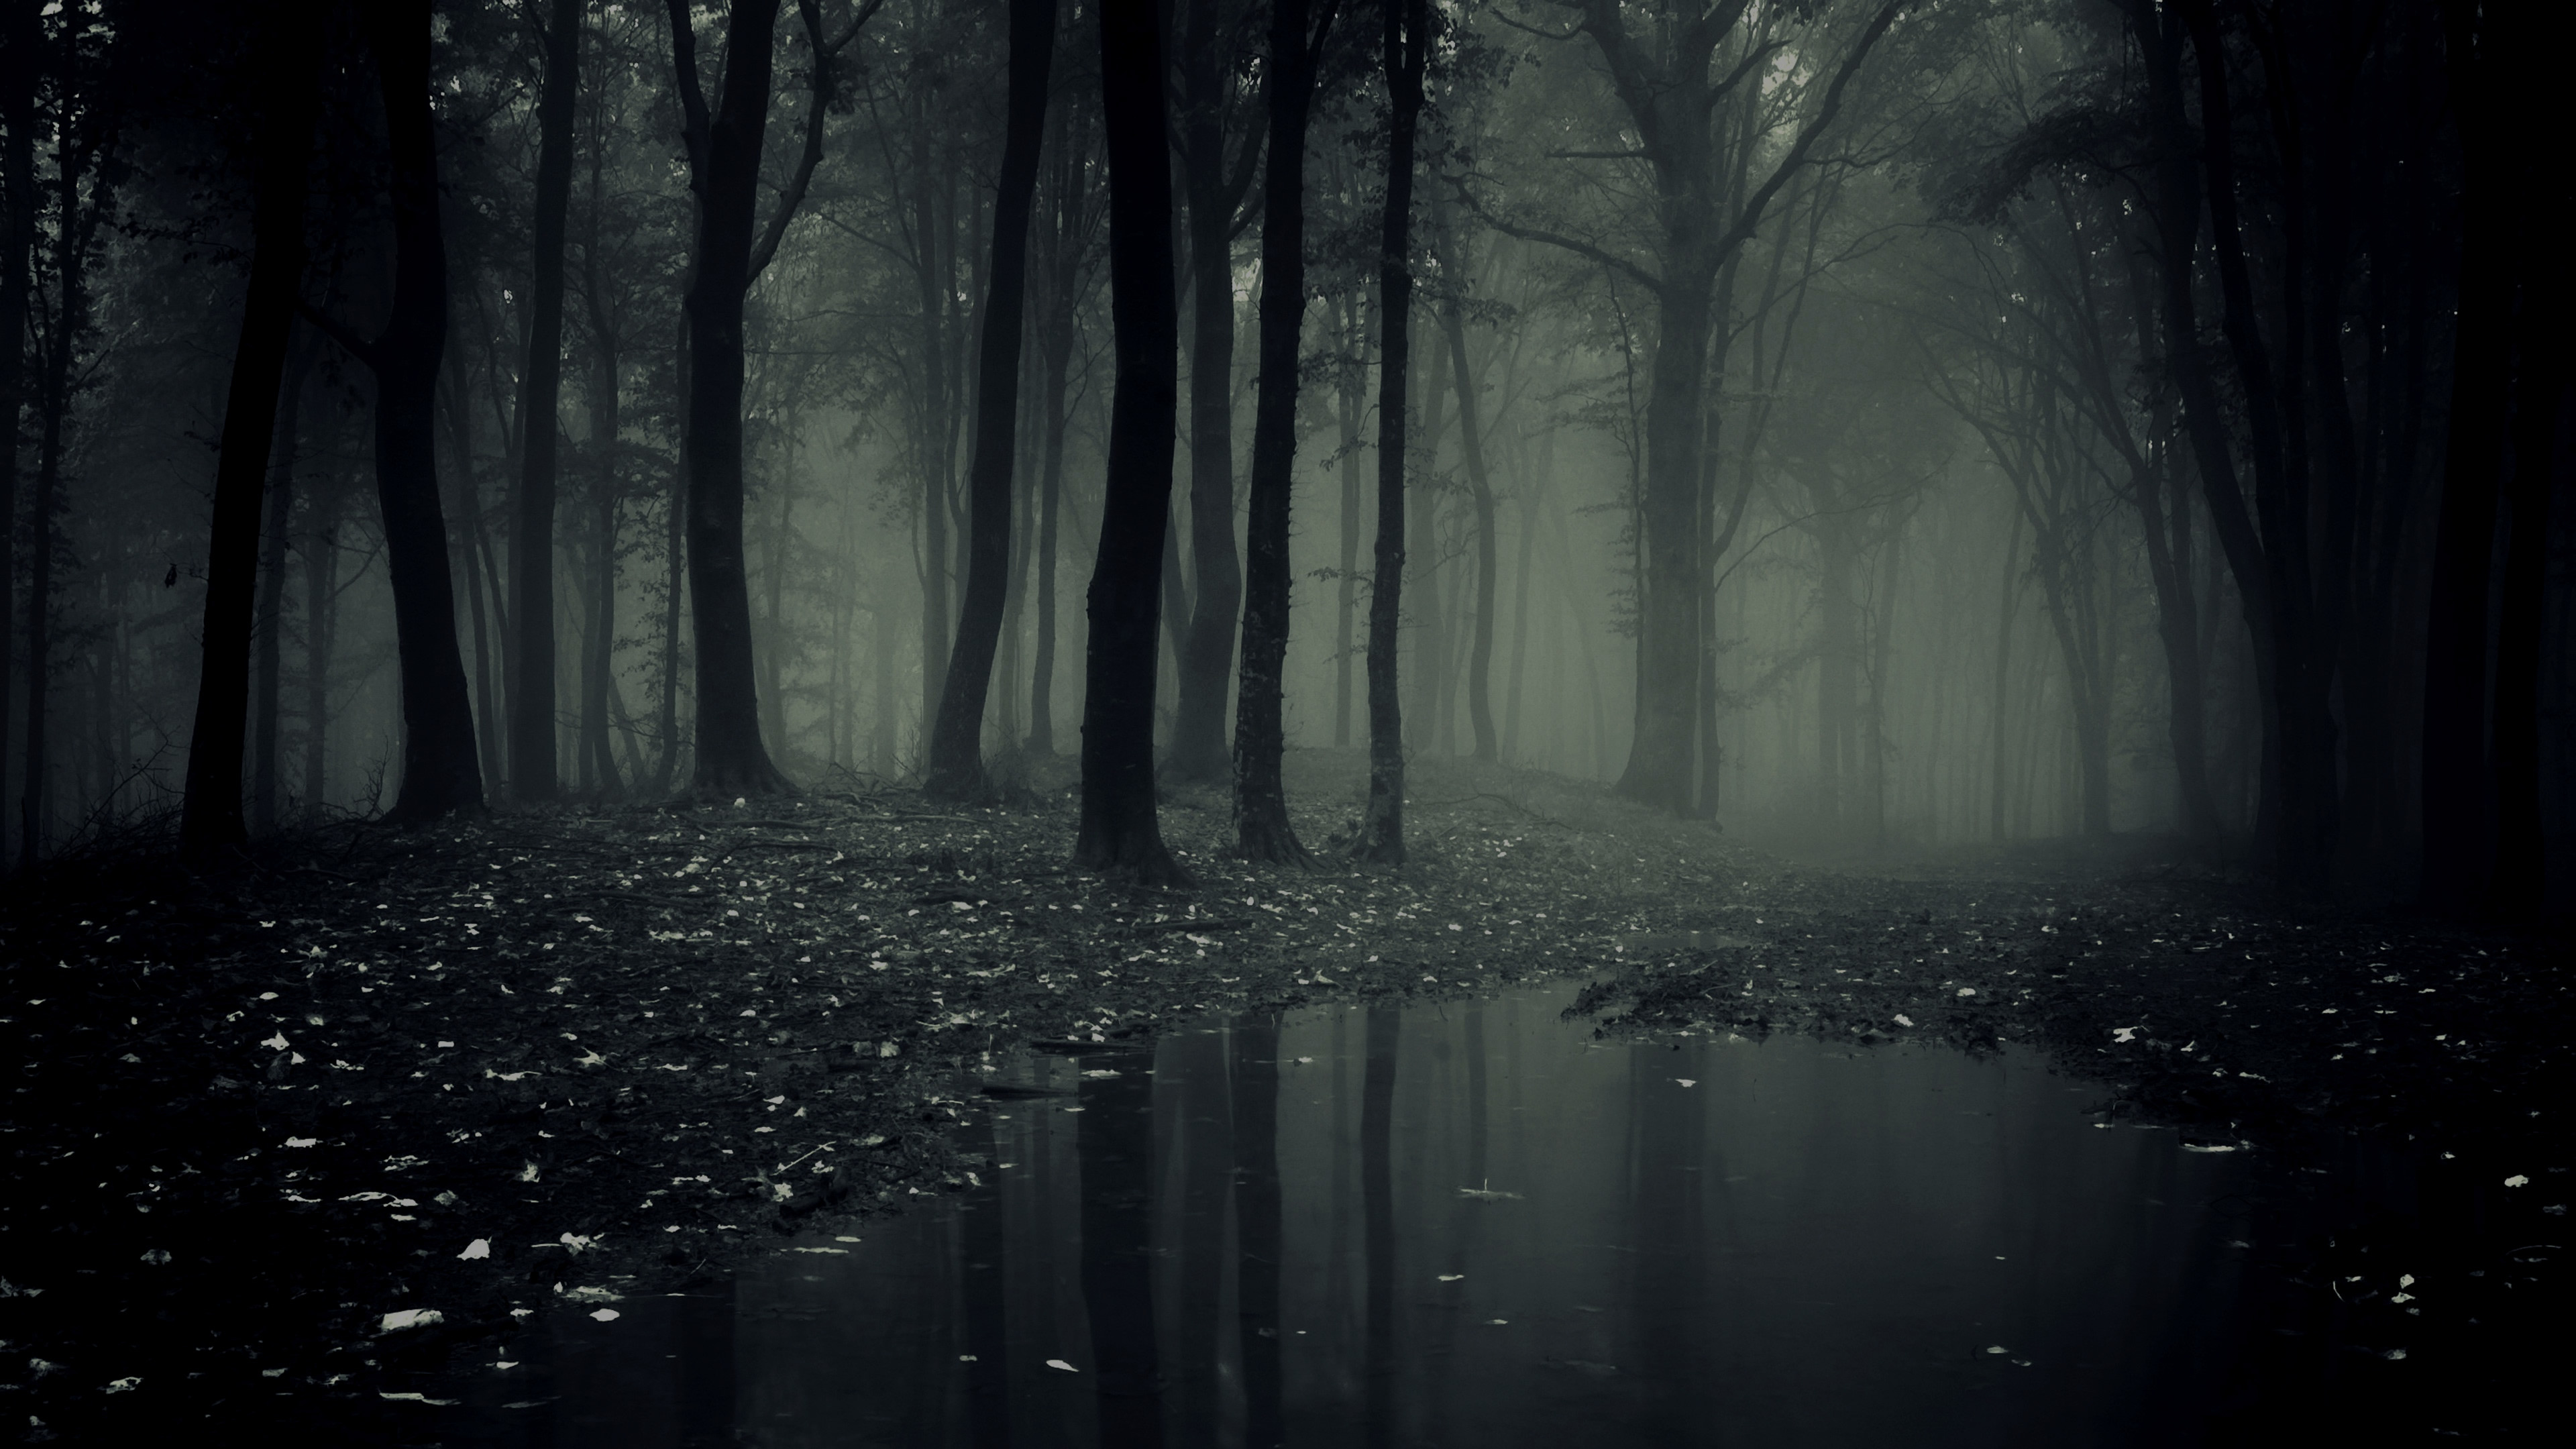 3840x2160 Explore and share Creepy Forest Wallpaper on WallpaperSafari